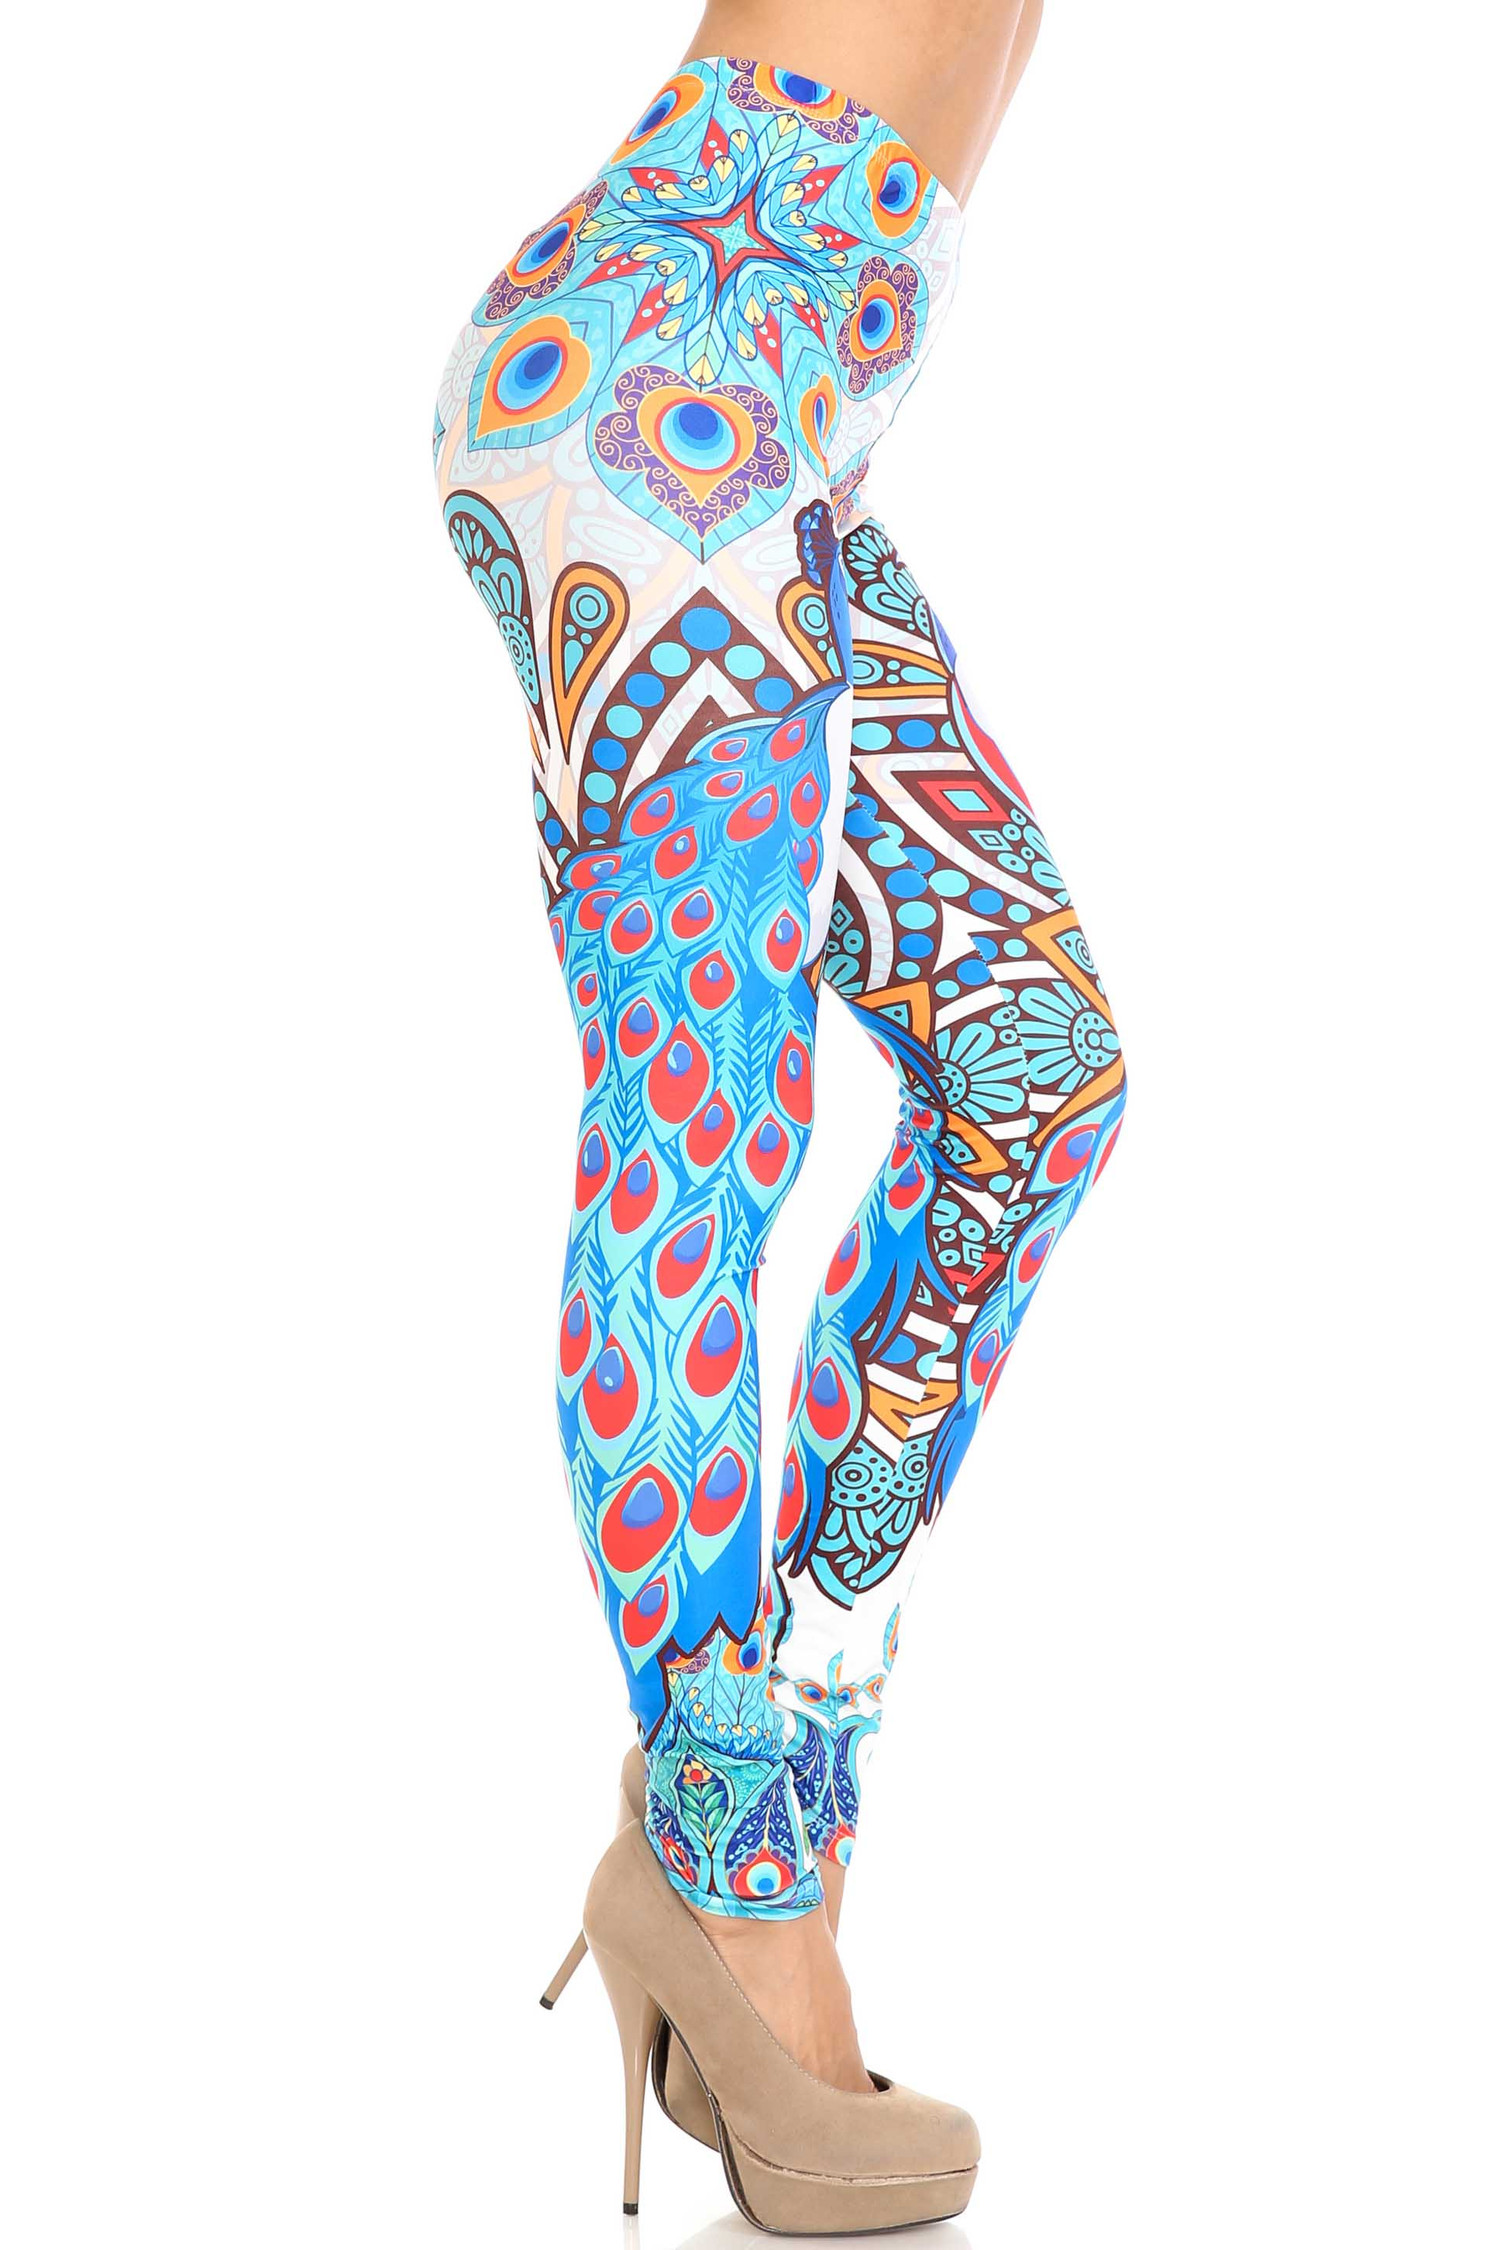 Creamy Soft Pristine Peacock Plus Size Leggings - By USA Fashion™